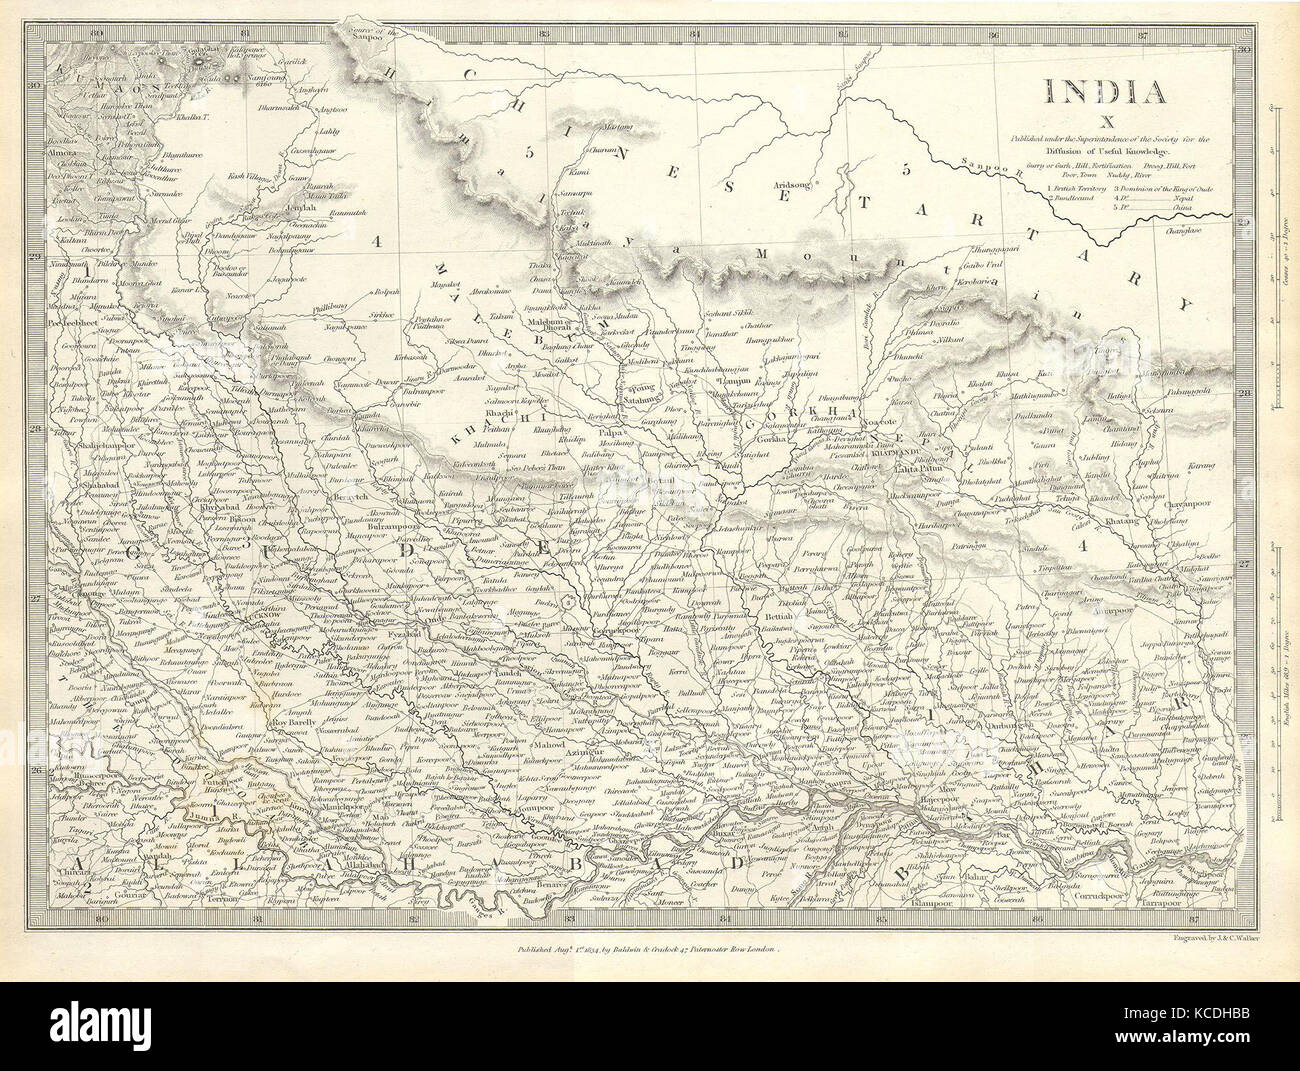 1834, S.D.U.K. Map of North India, Nepal, and Allahabad - Stock Image